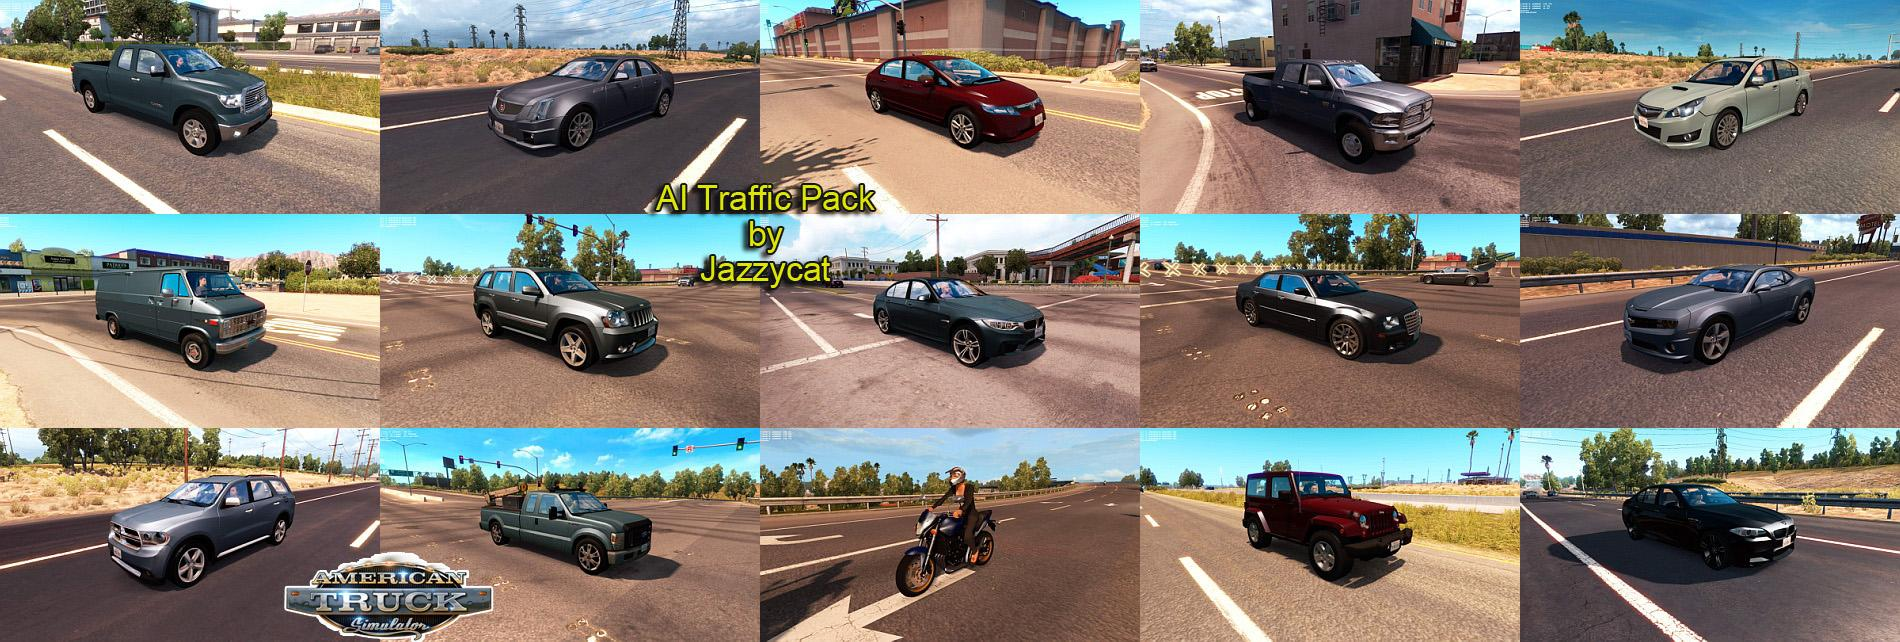 AI Traffic Pack by Jazzycat v1 3 • ATS mods | American truck